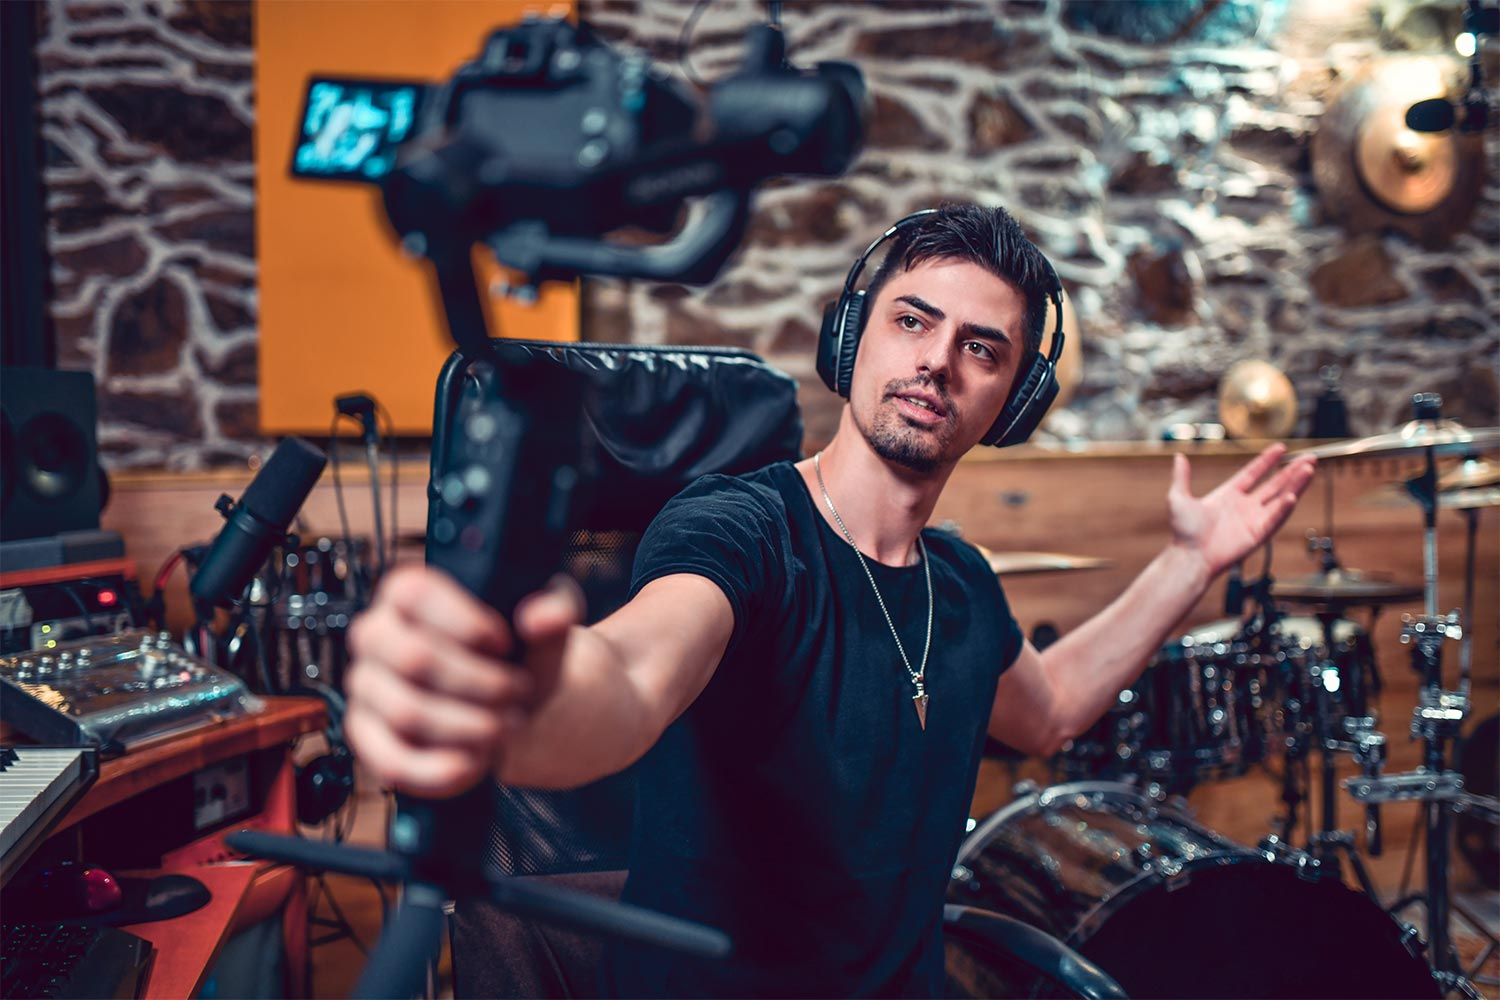 4 Types Of Content Musicians Can Video Stream (Besides Live Music)